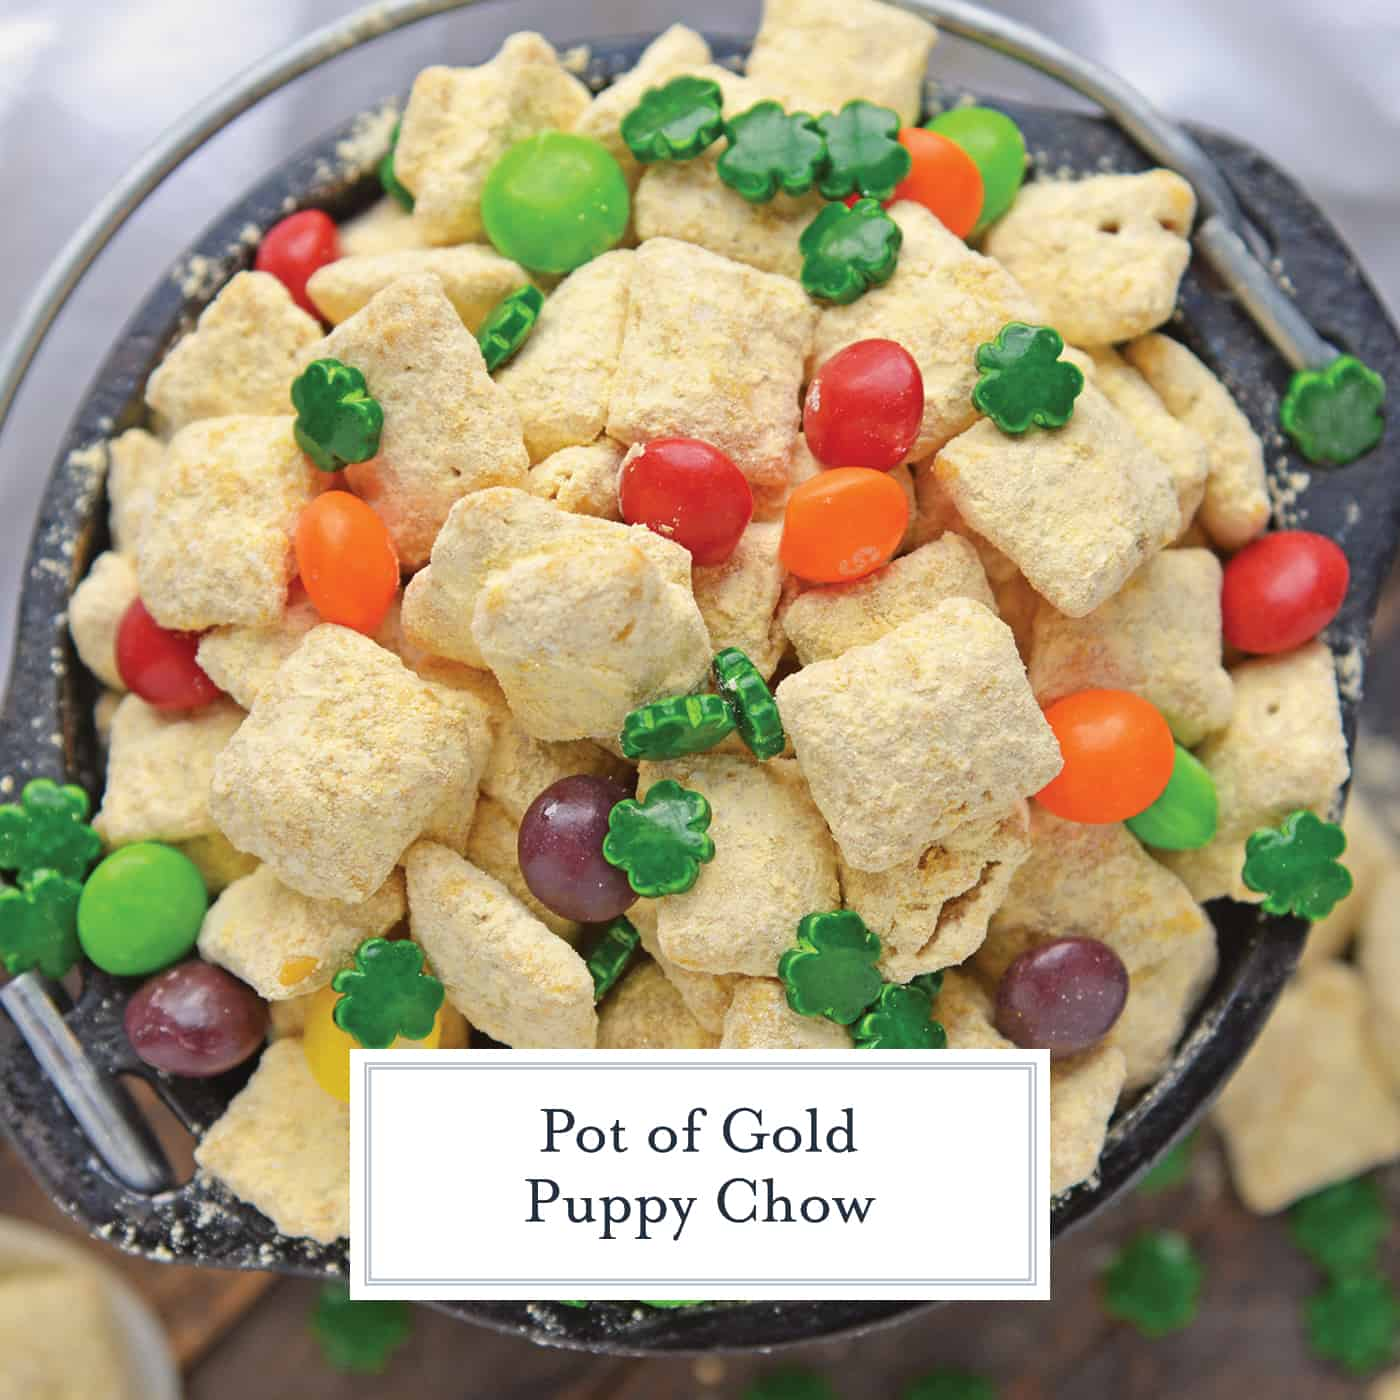 Bowl of St. Patrick's Day Puppy Chow